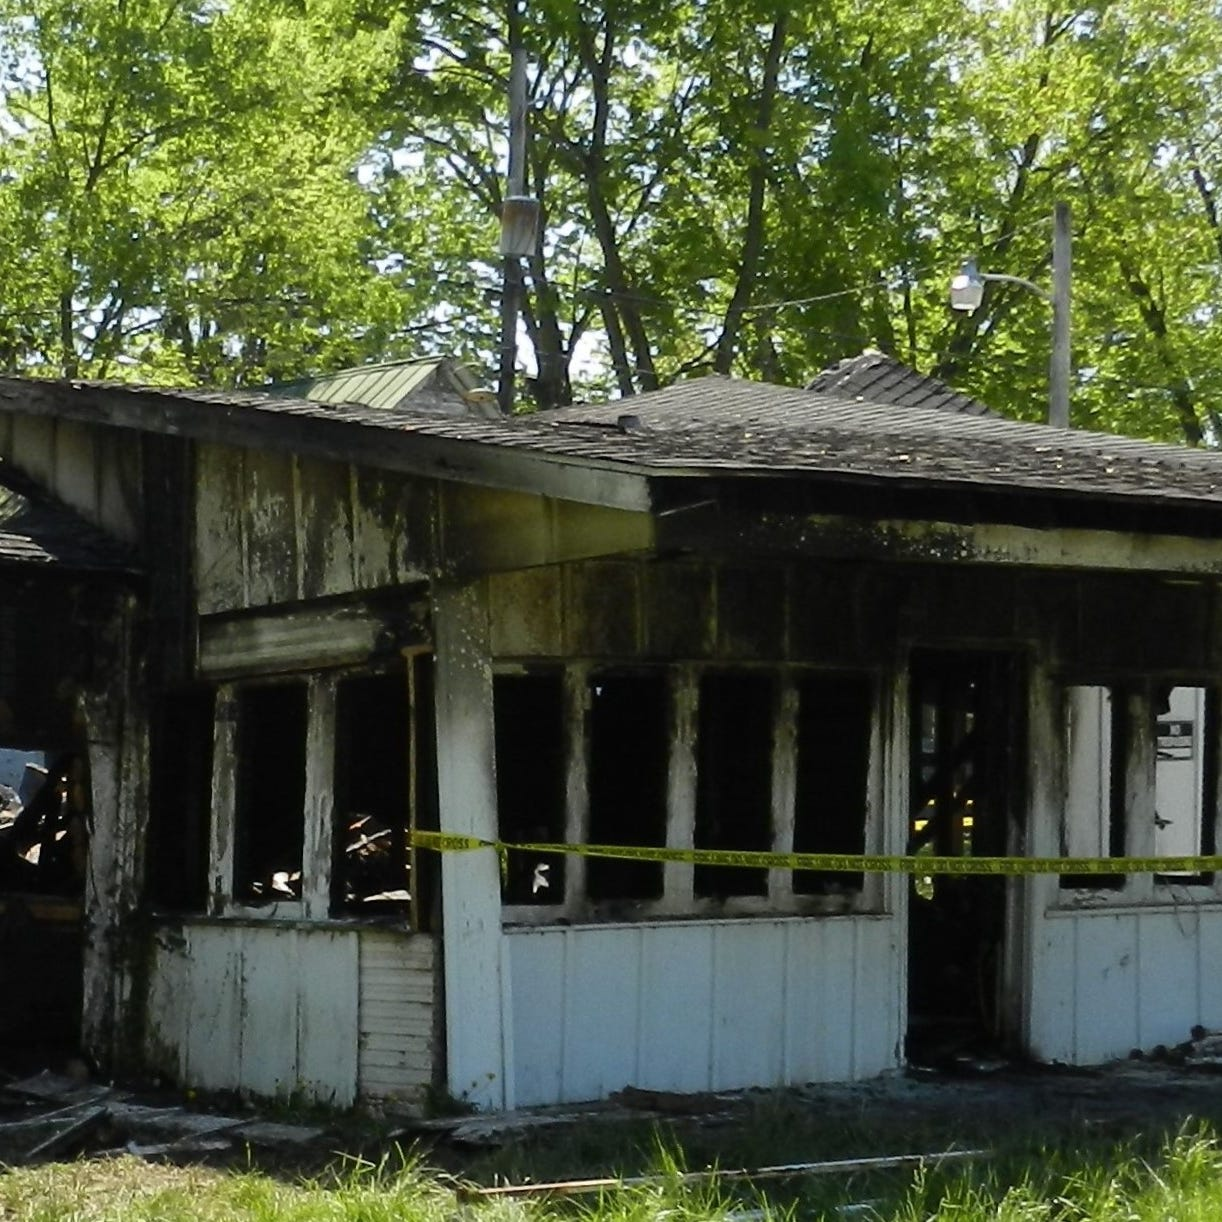 Thornville fire ruled an arson after samples prove accelerant was used